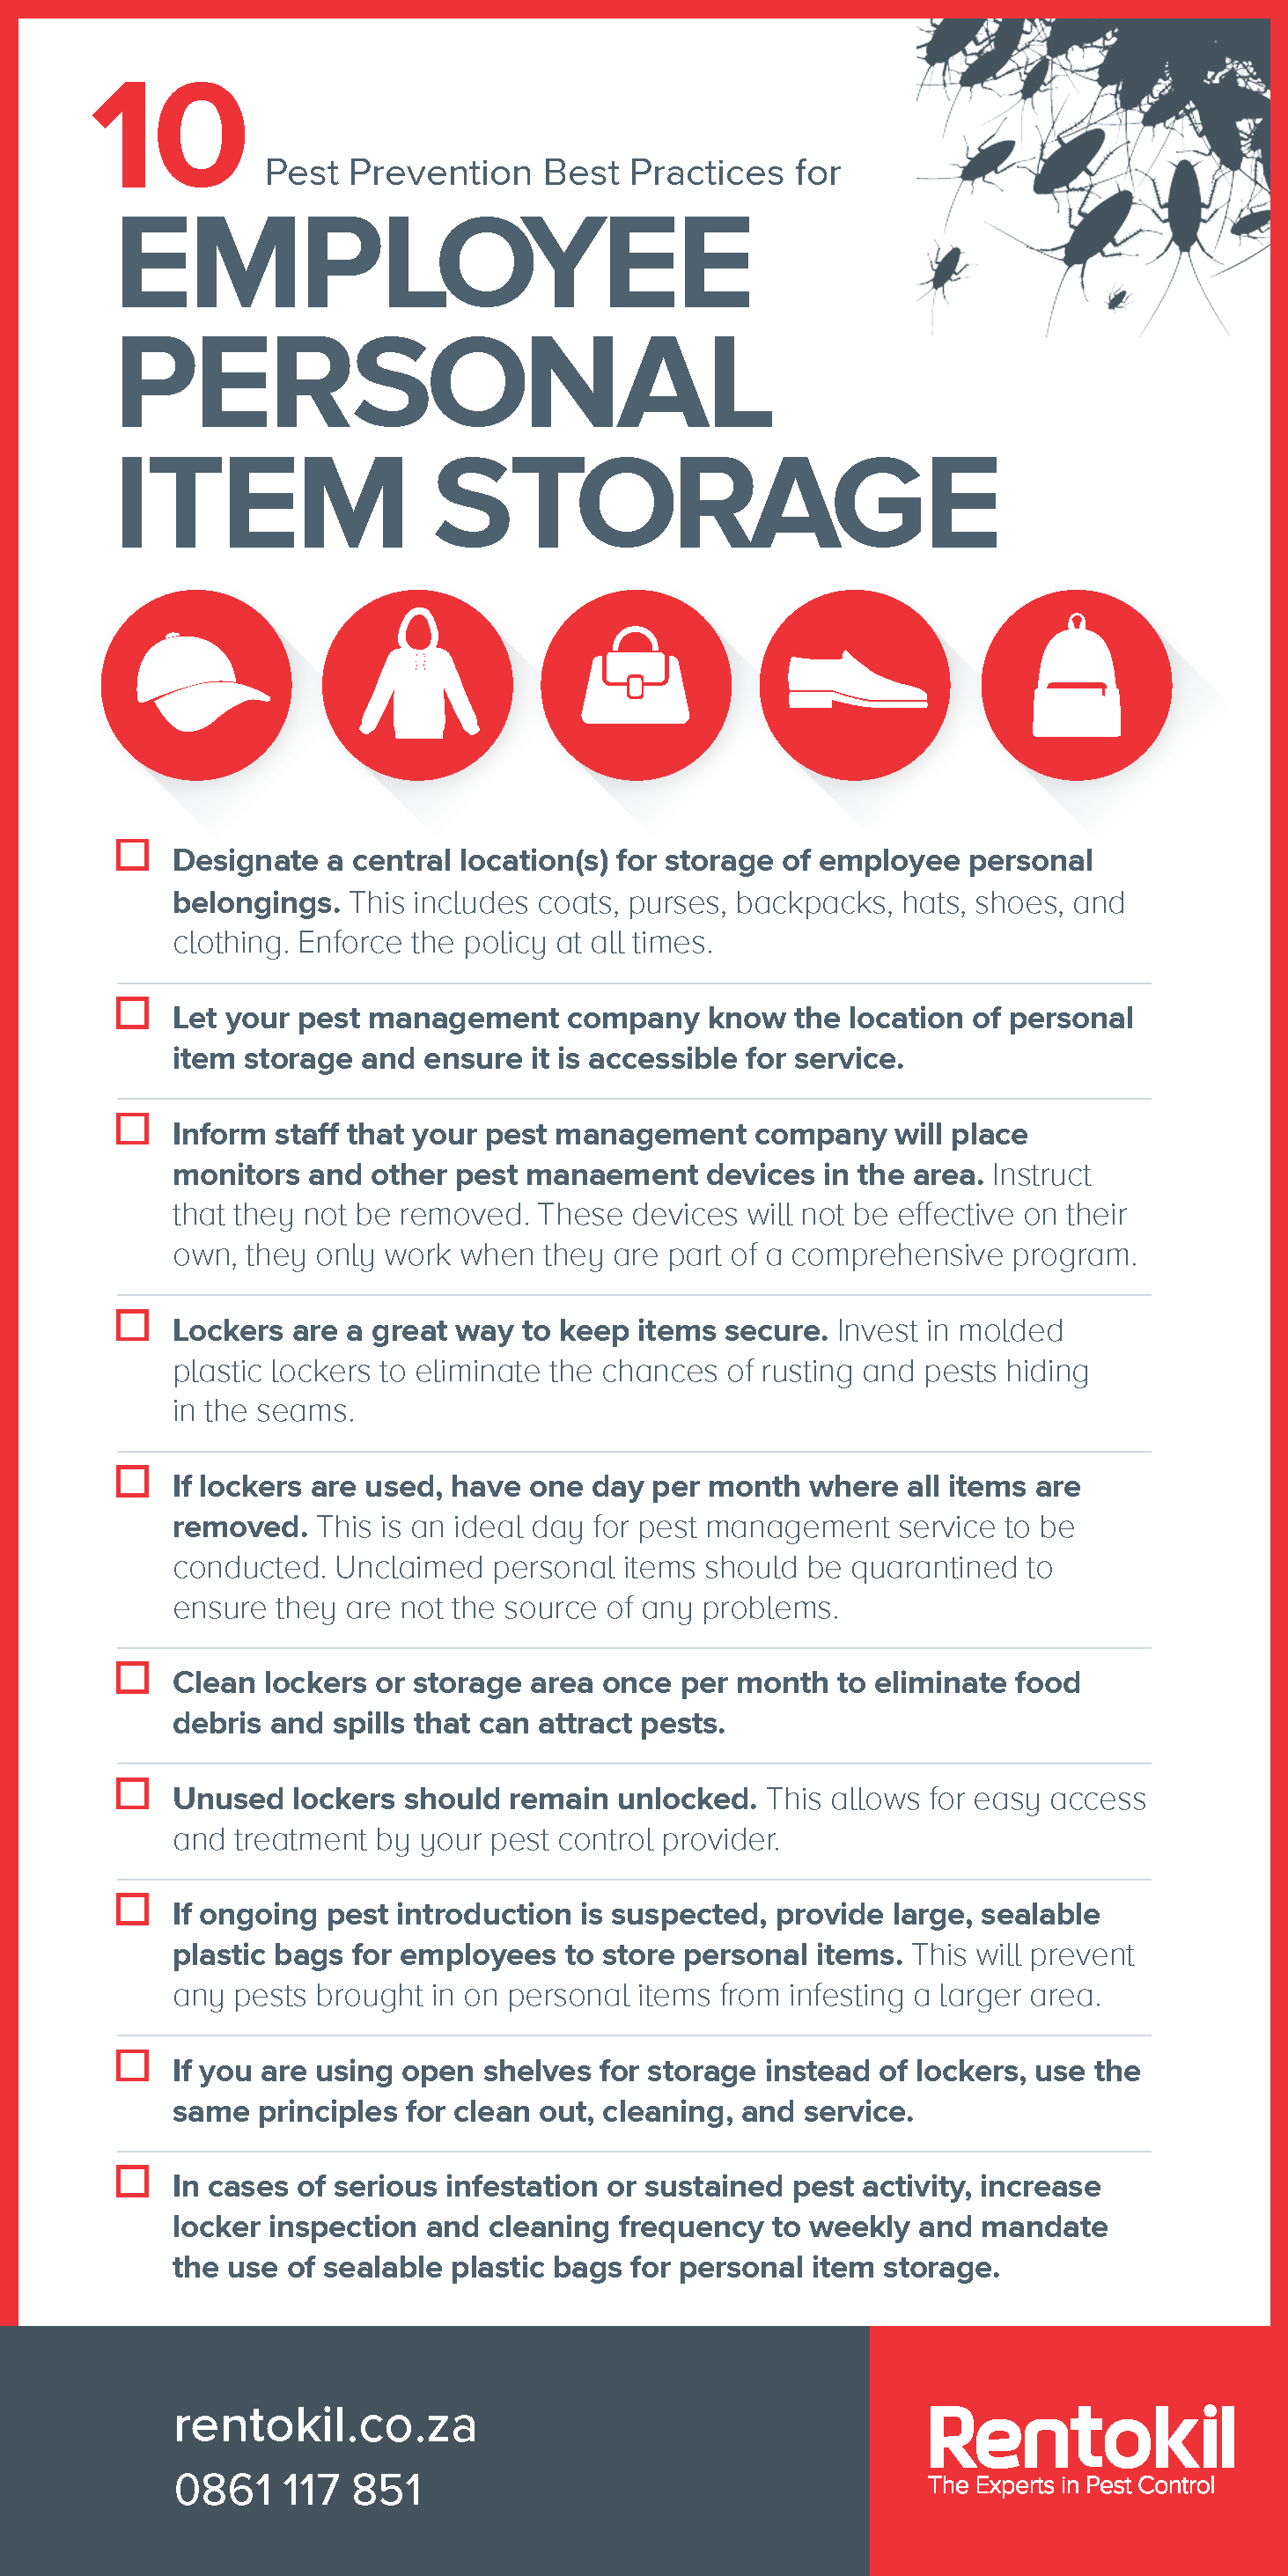 Pest Prevention Checklist Poster - 10 Best Practices for Employee Personal Item Storage